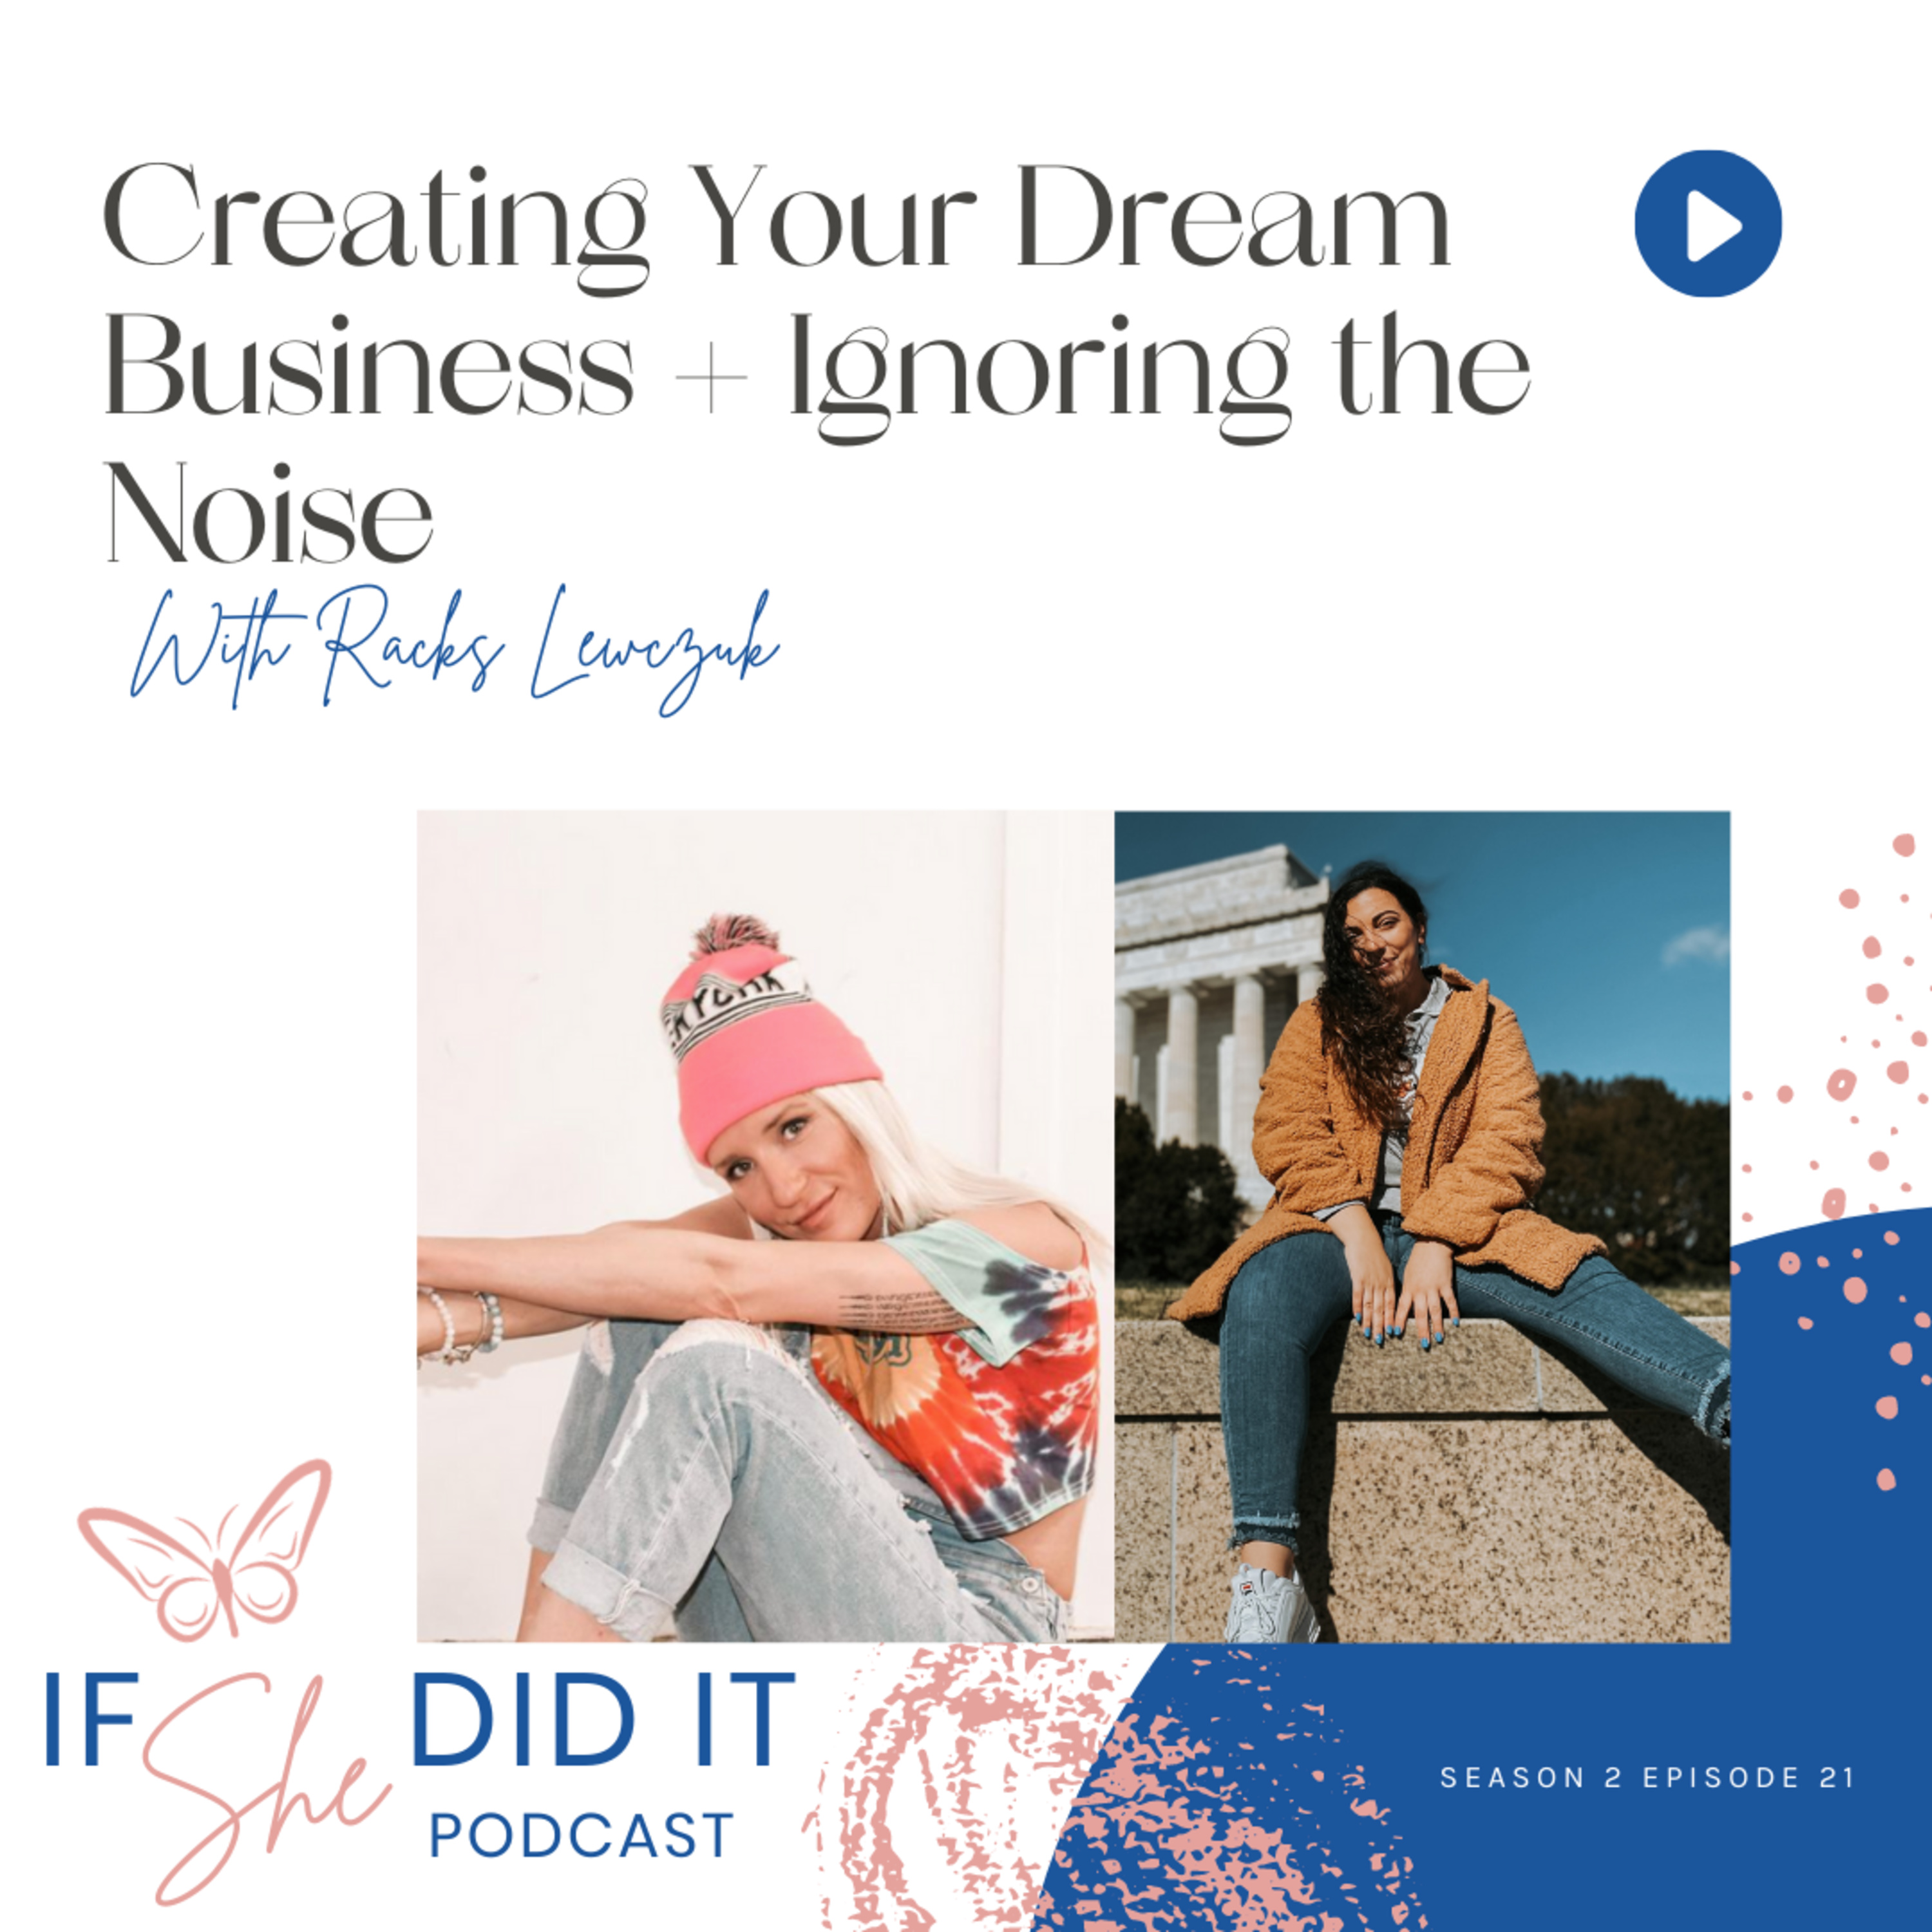 Creating Your Dream Business + Ignoring the Noise